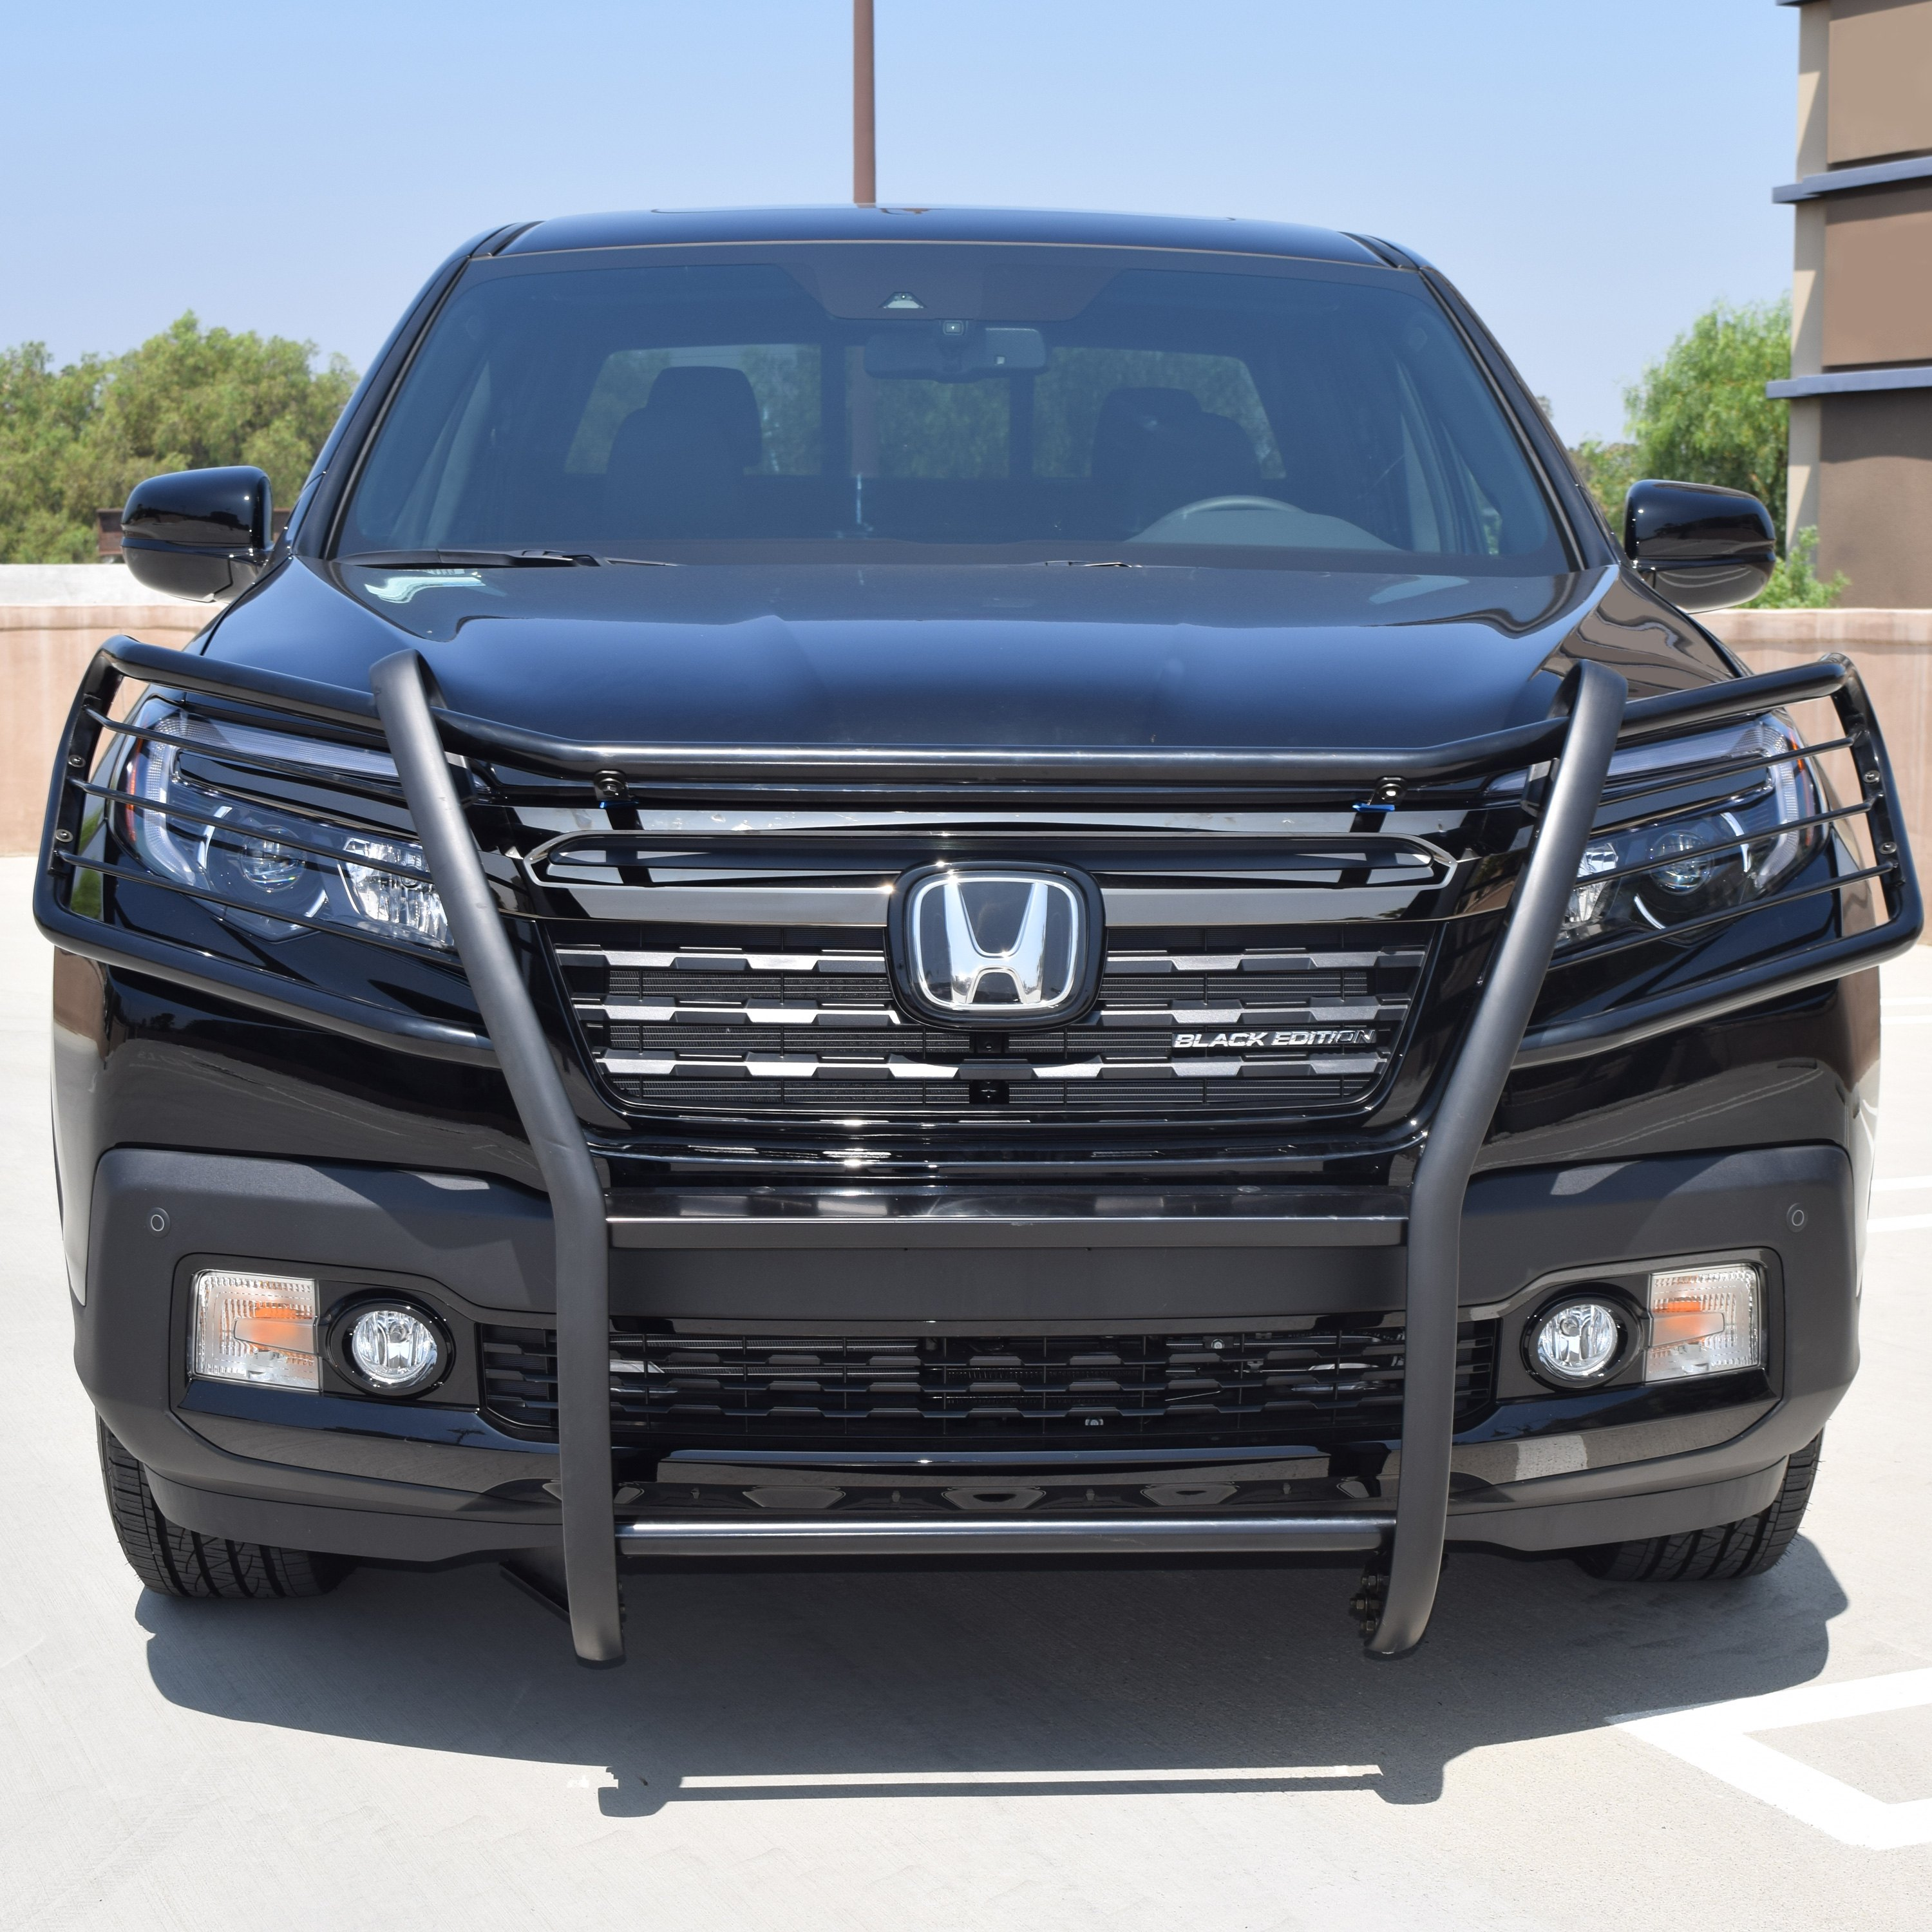 accessories release news allnew across image canada nca view larger ridgeline en honda newsdetails launches